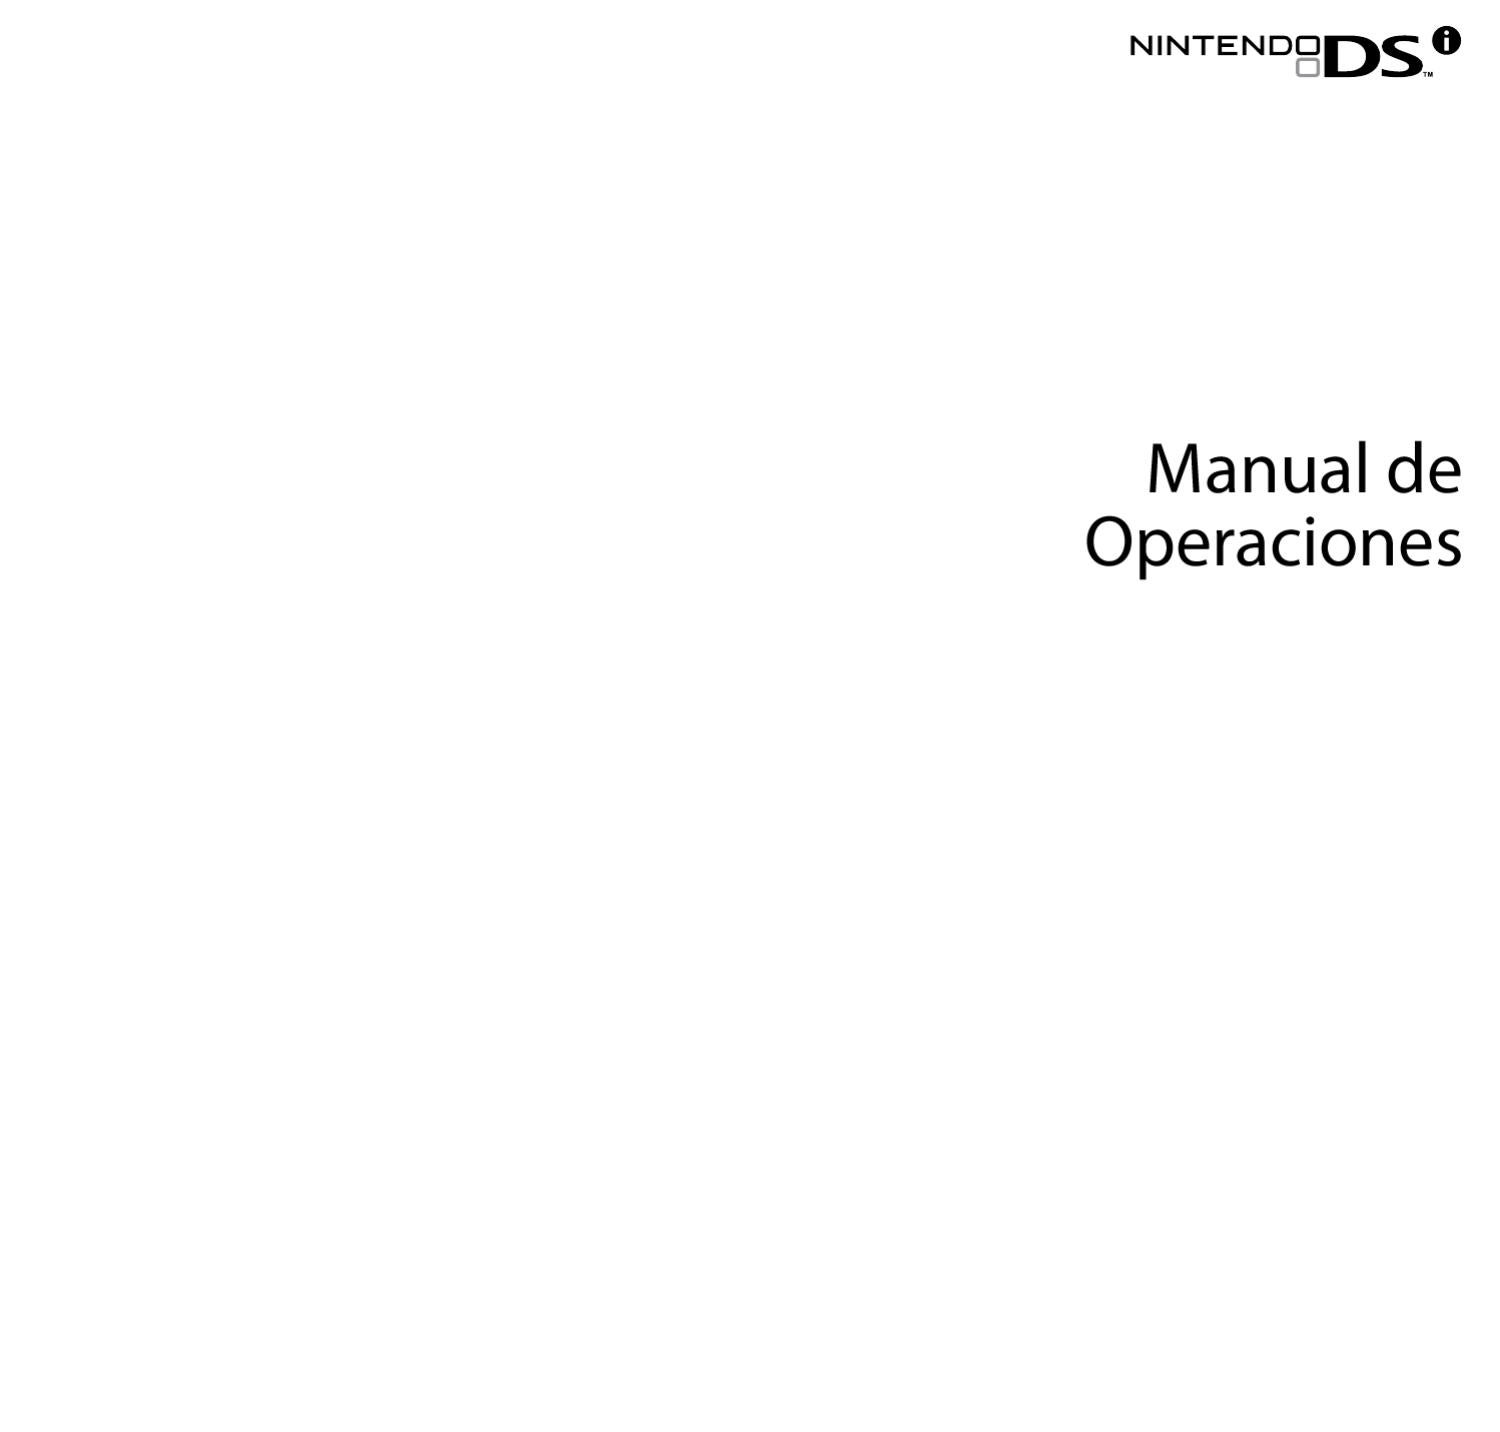 manual de operaciones para nintendo dsi by ronald caruci issuu rh issuu com Dsi Charger Dsi Charger